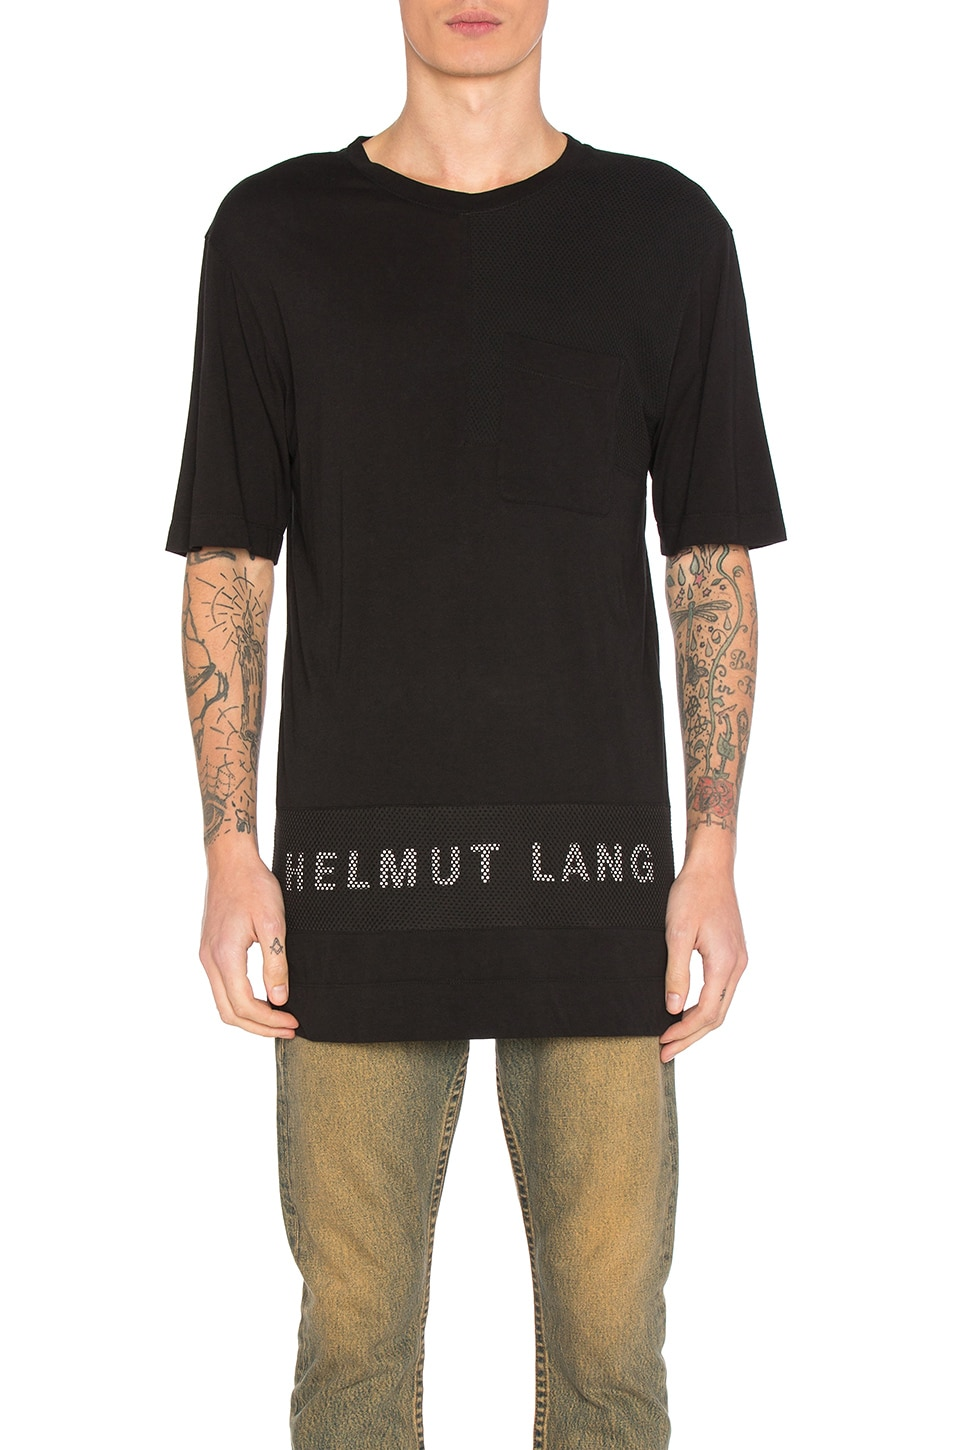 Mesh Combo Tee by Helmut Lang